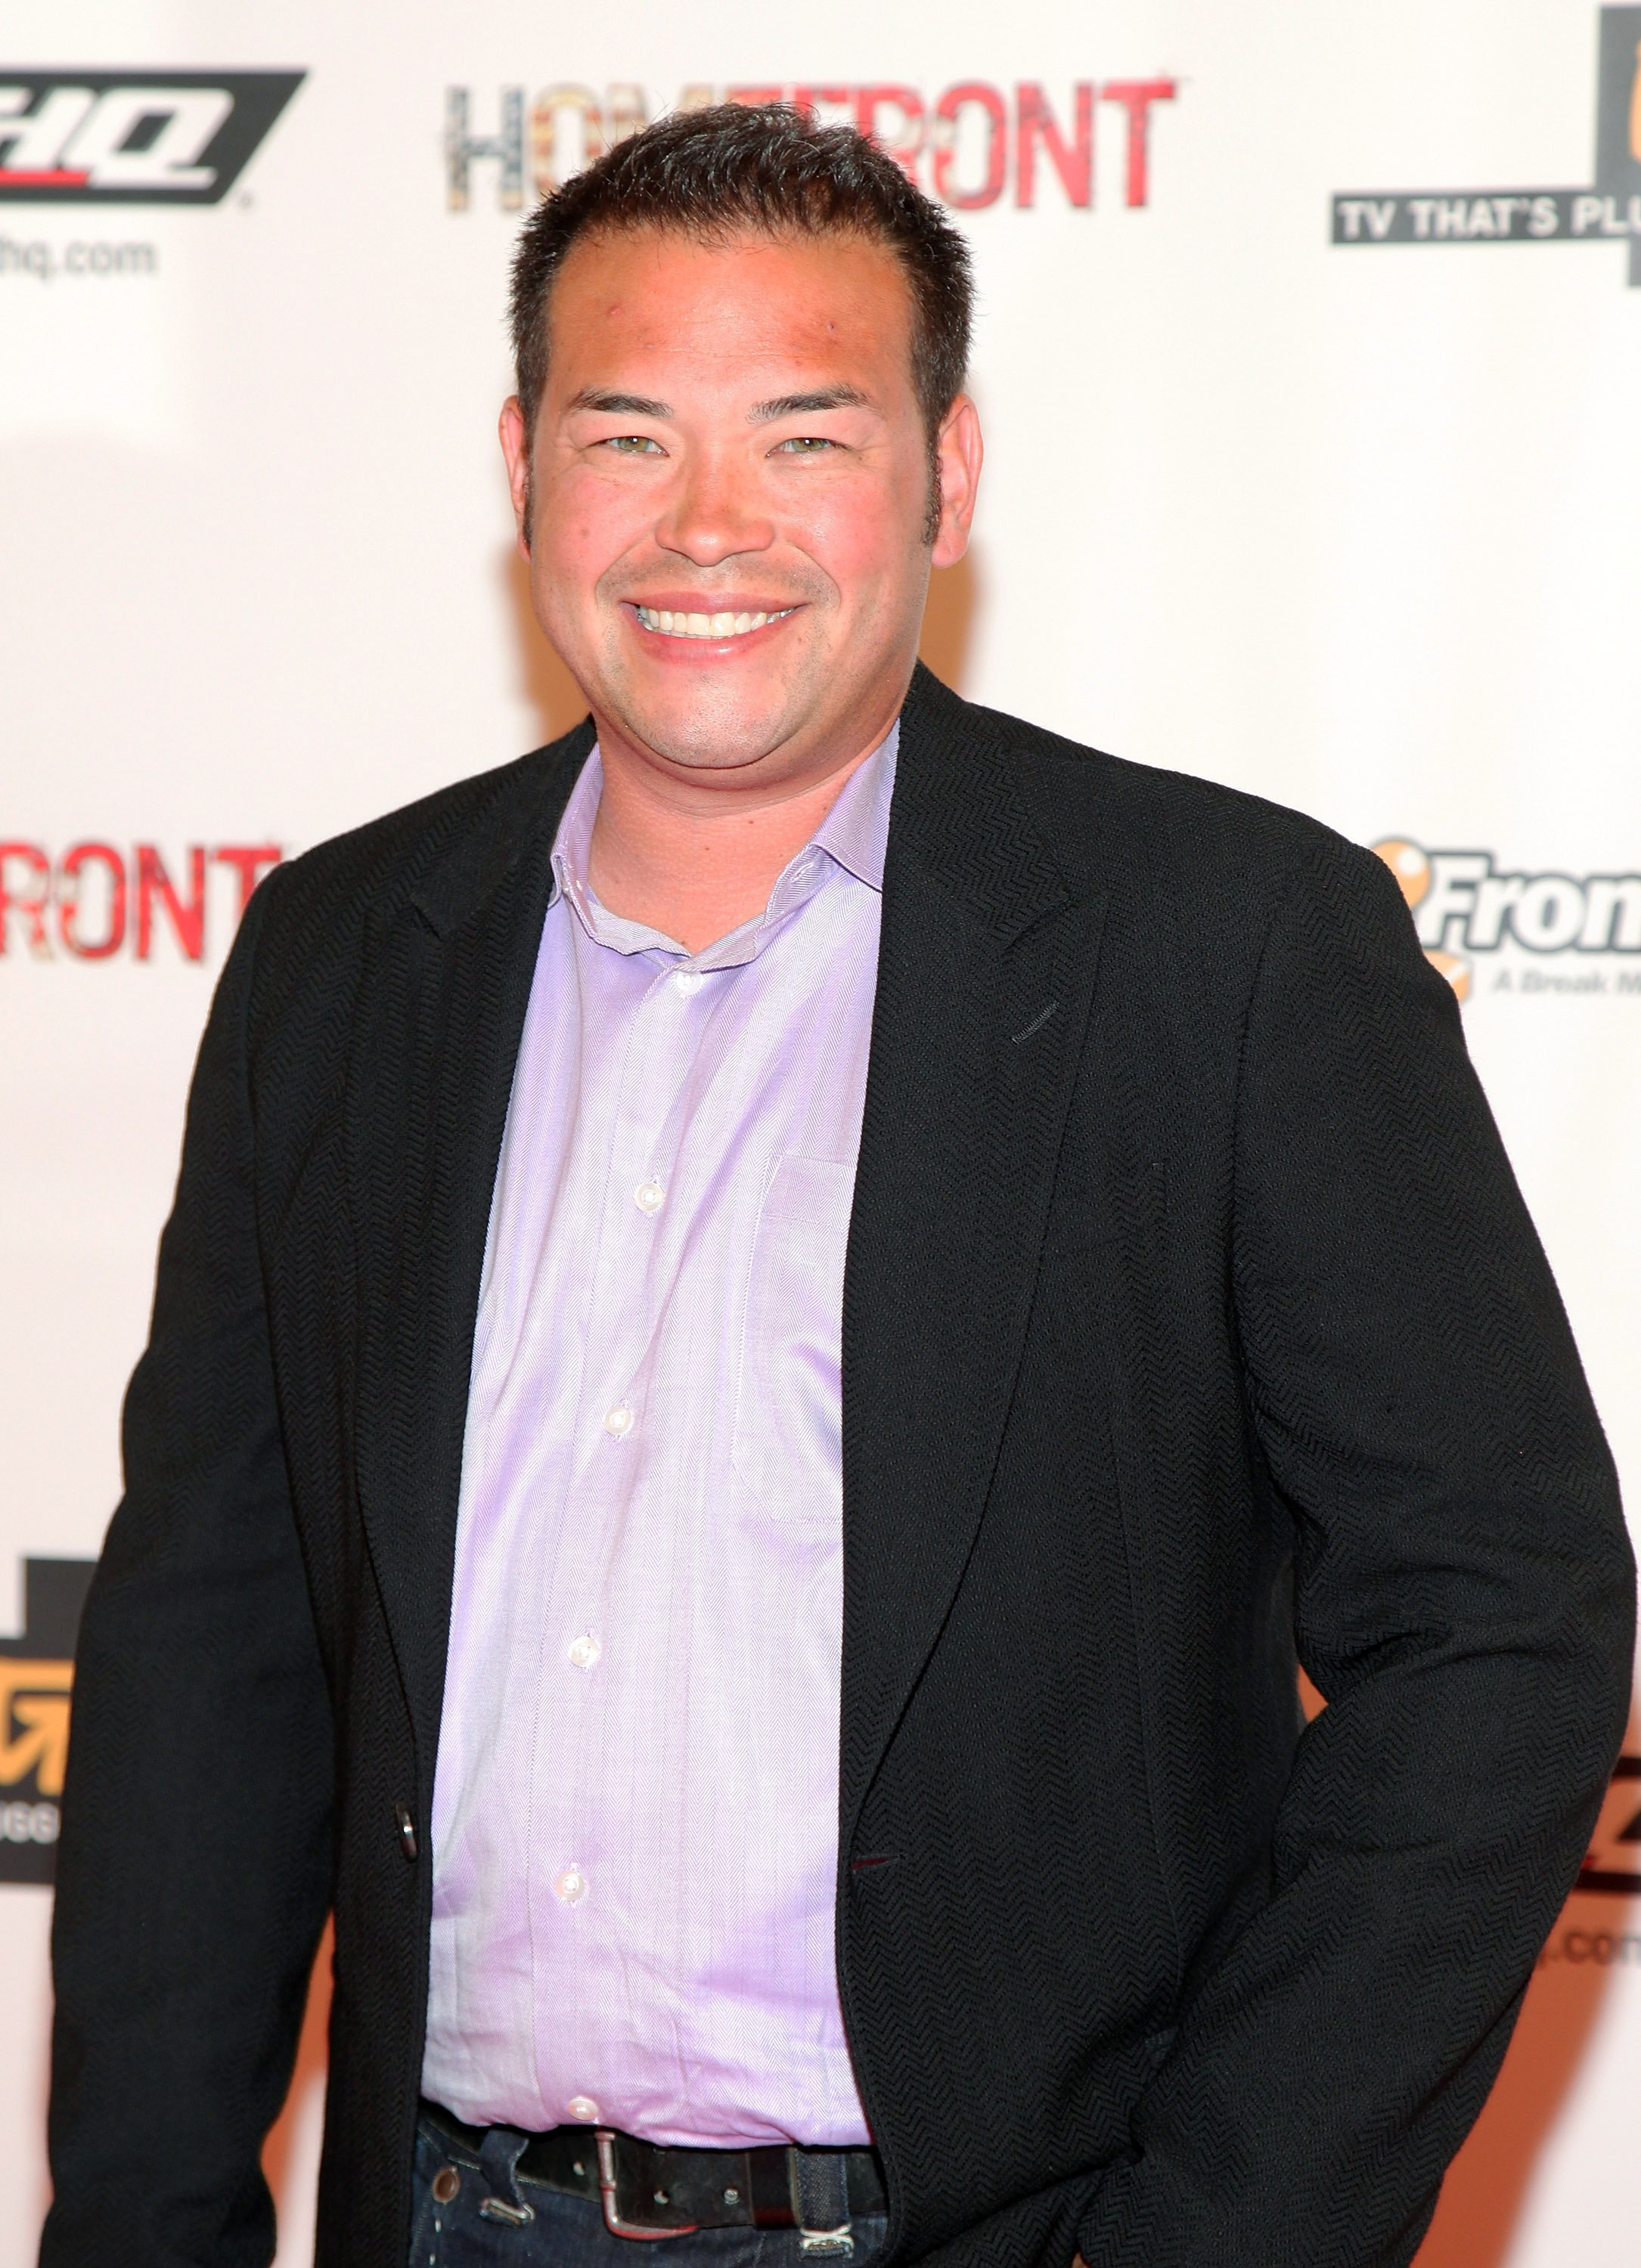 """Jon & Kate Plus 8 "" star Jon Gosselin attends the E3's ""No Prisoners"" event in Los Angeles, California in 2010. 